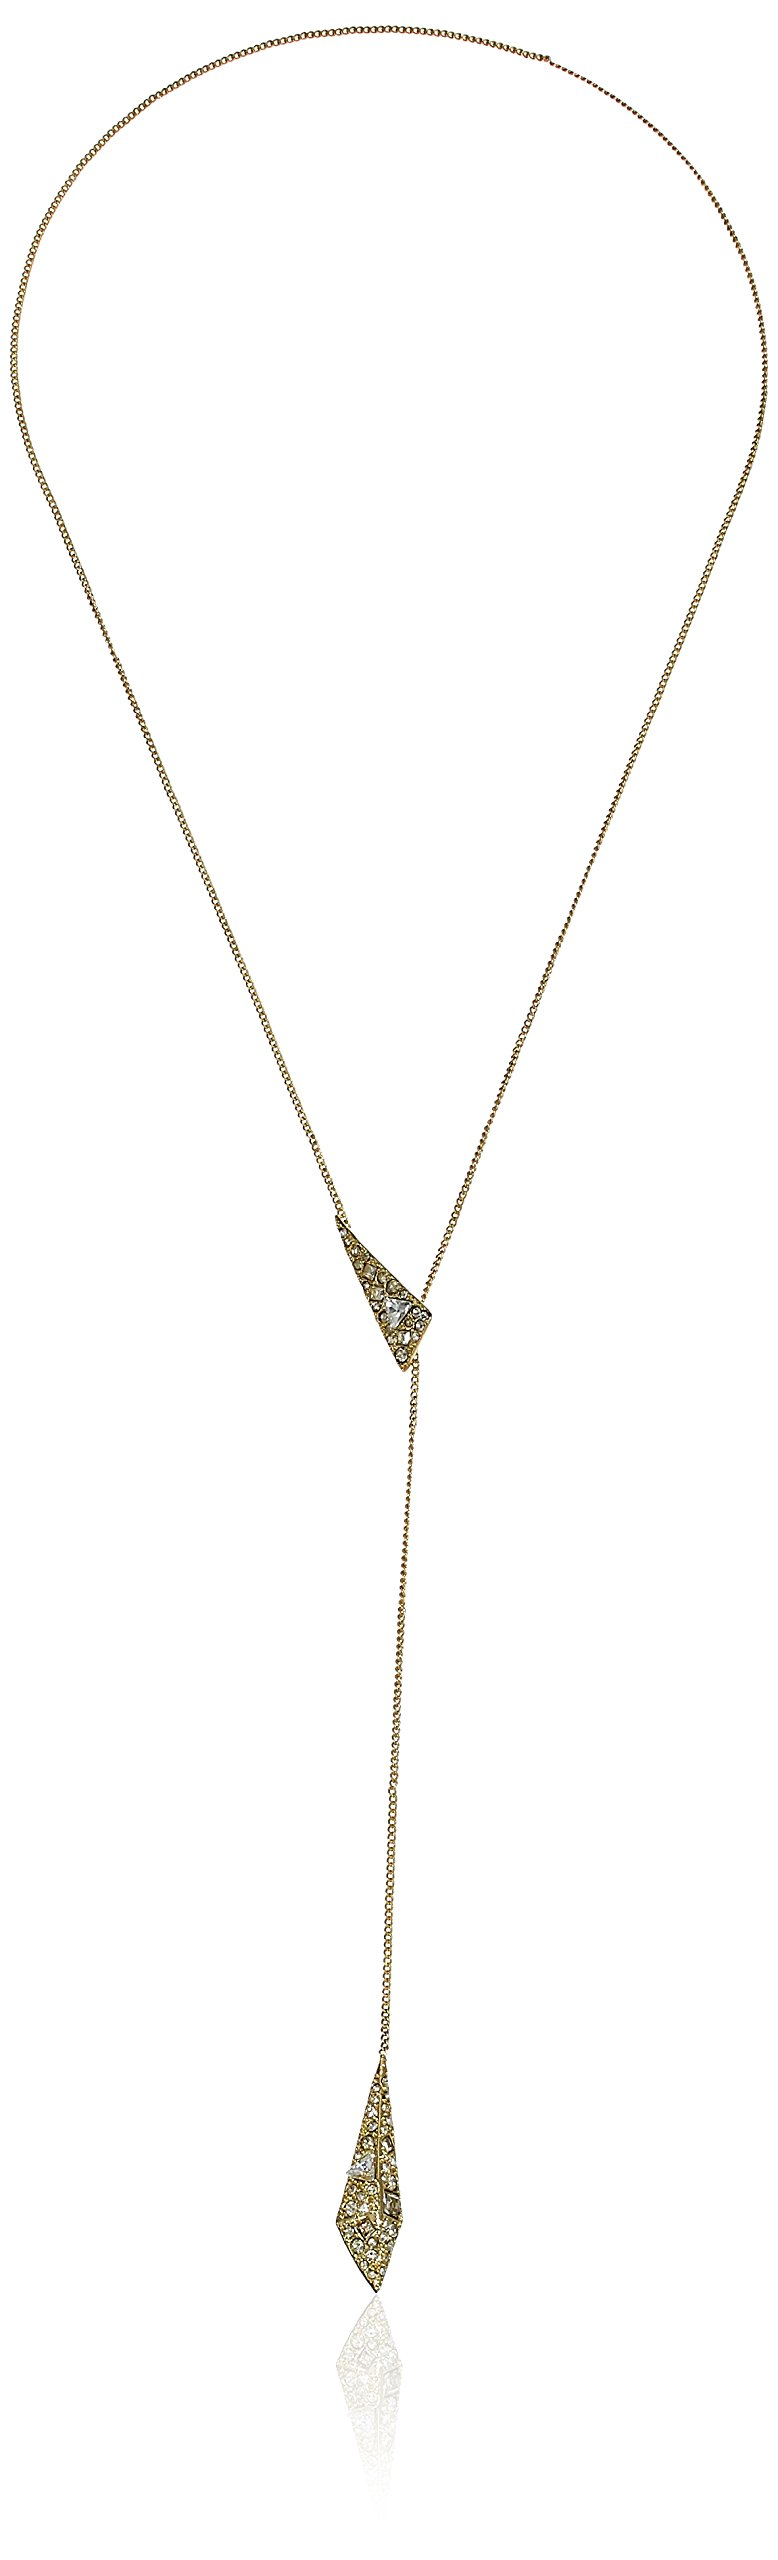 Alexis Bittar Crystal Encrusted Origami Lariat Y-Shaped Necklace